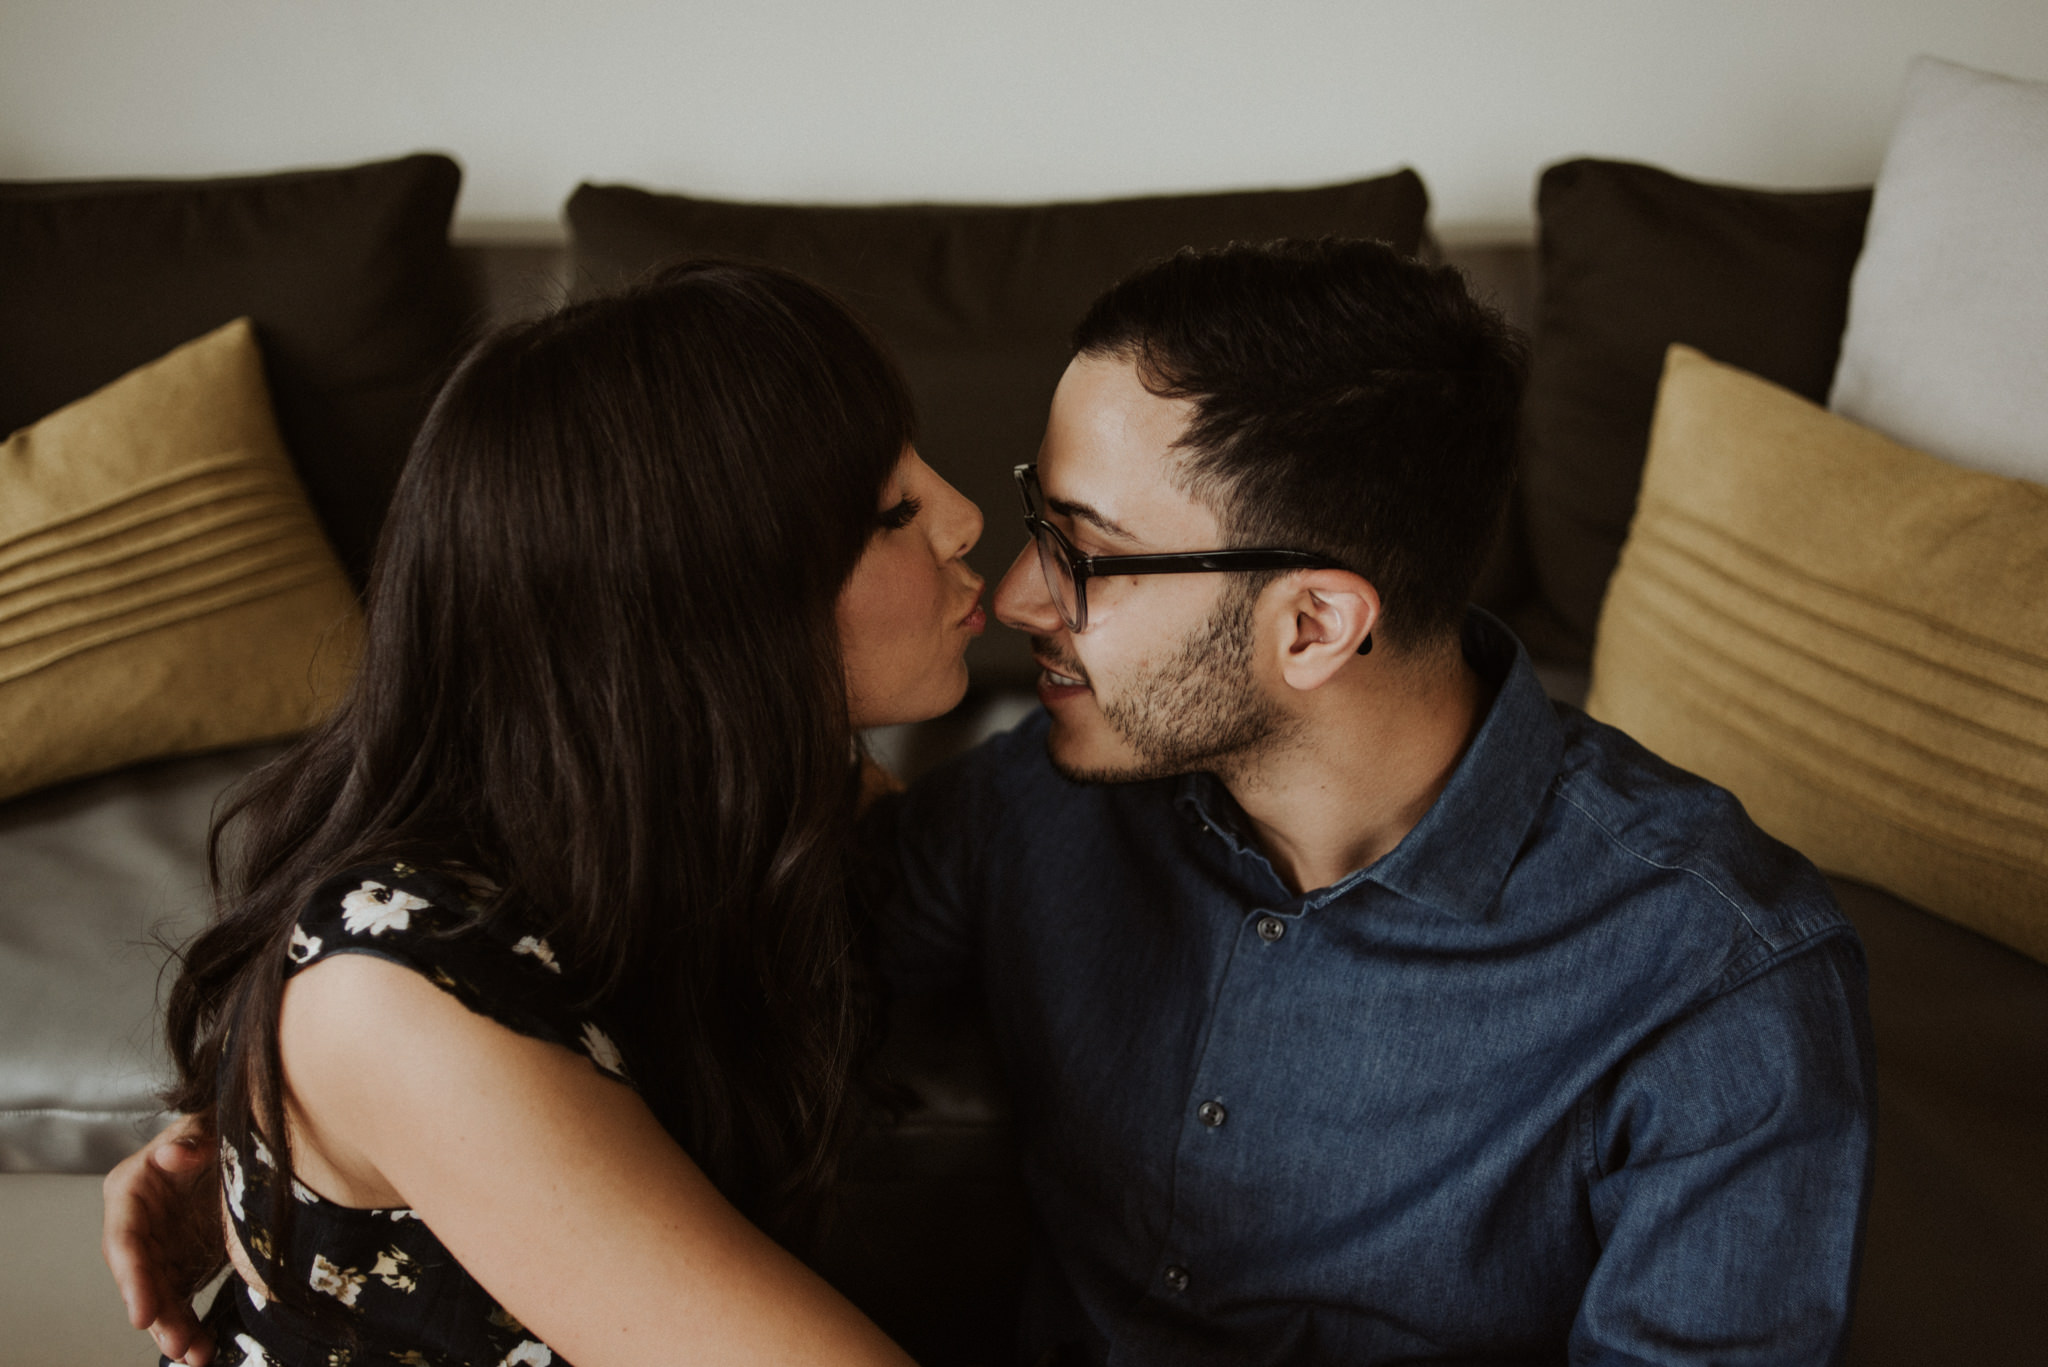 girl kissing guys nose in living room